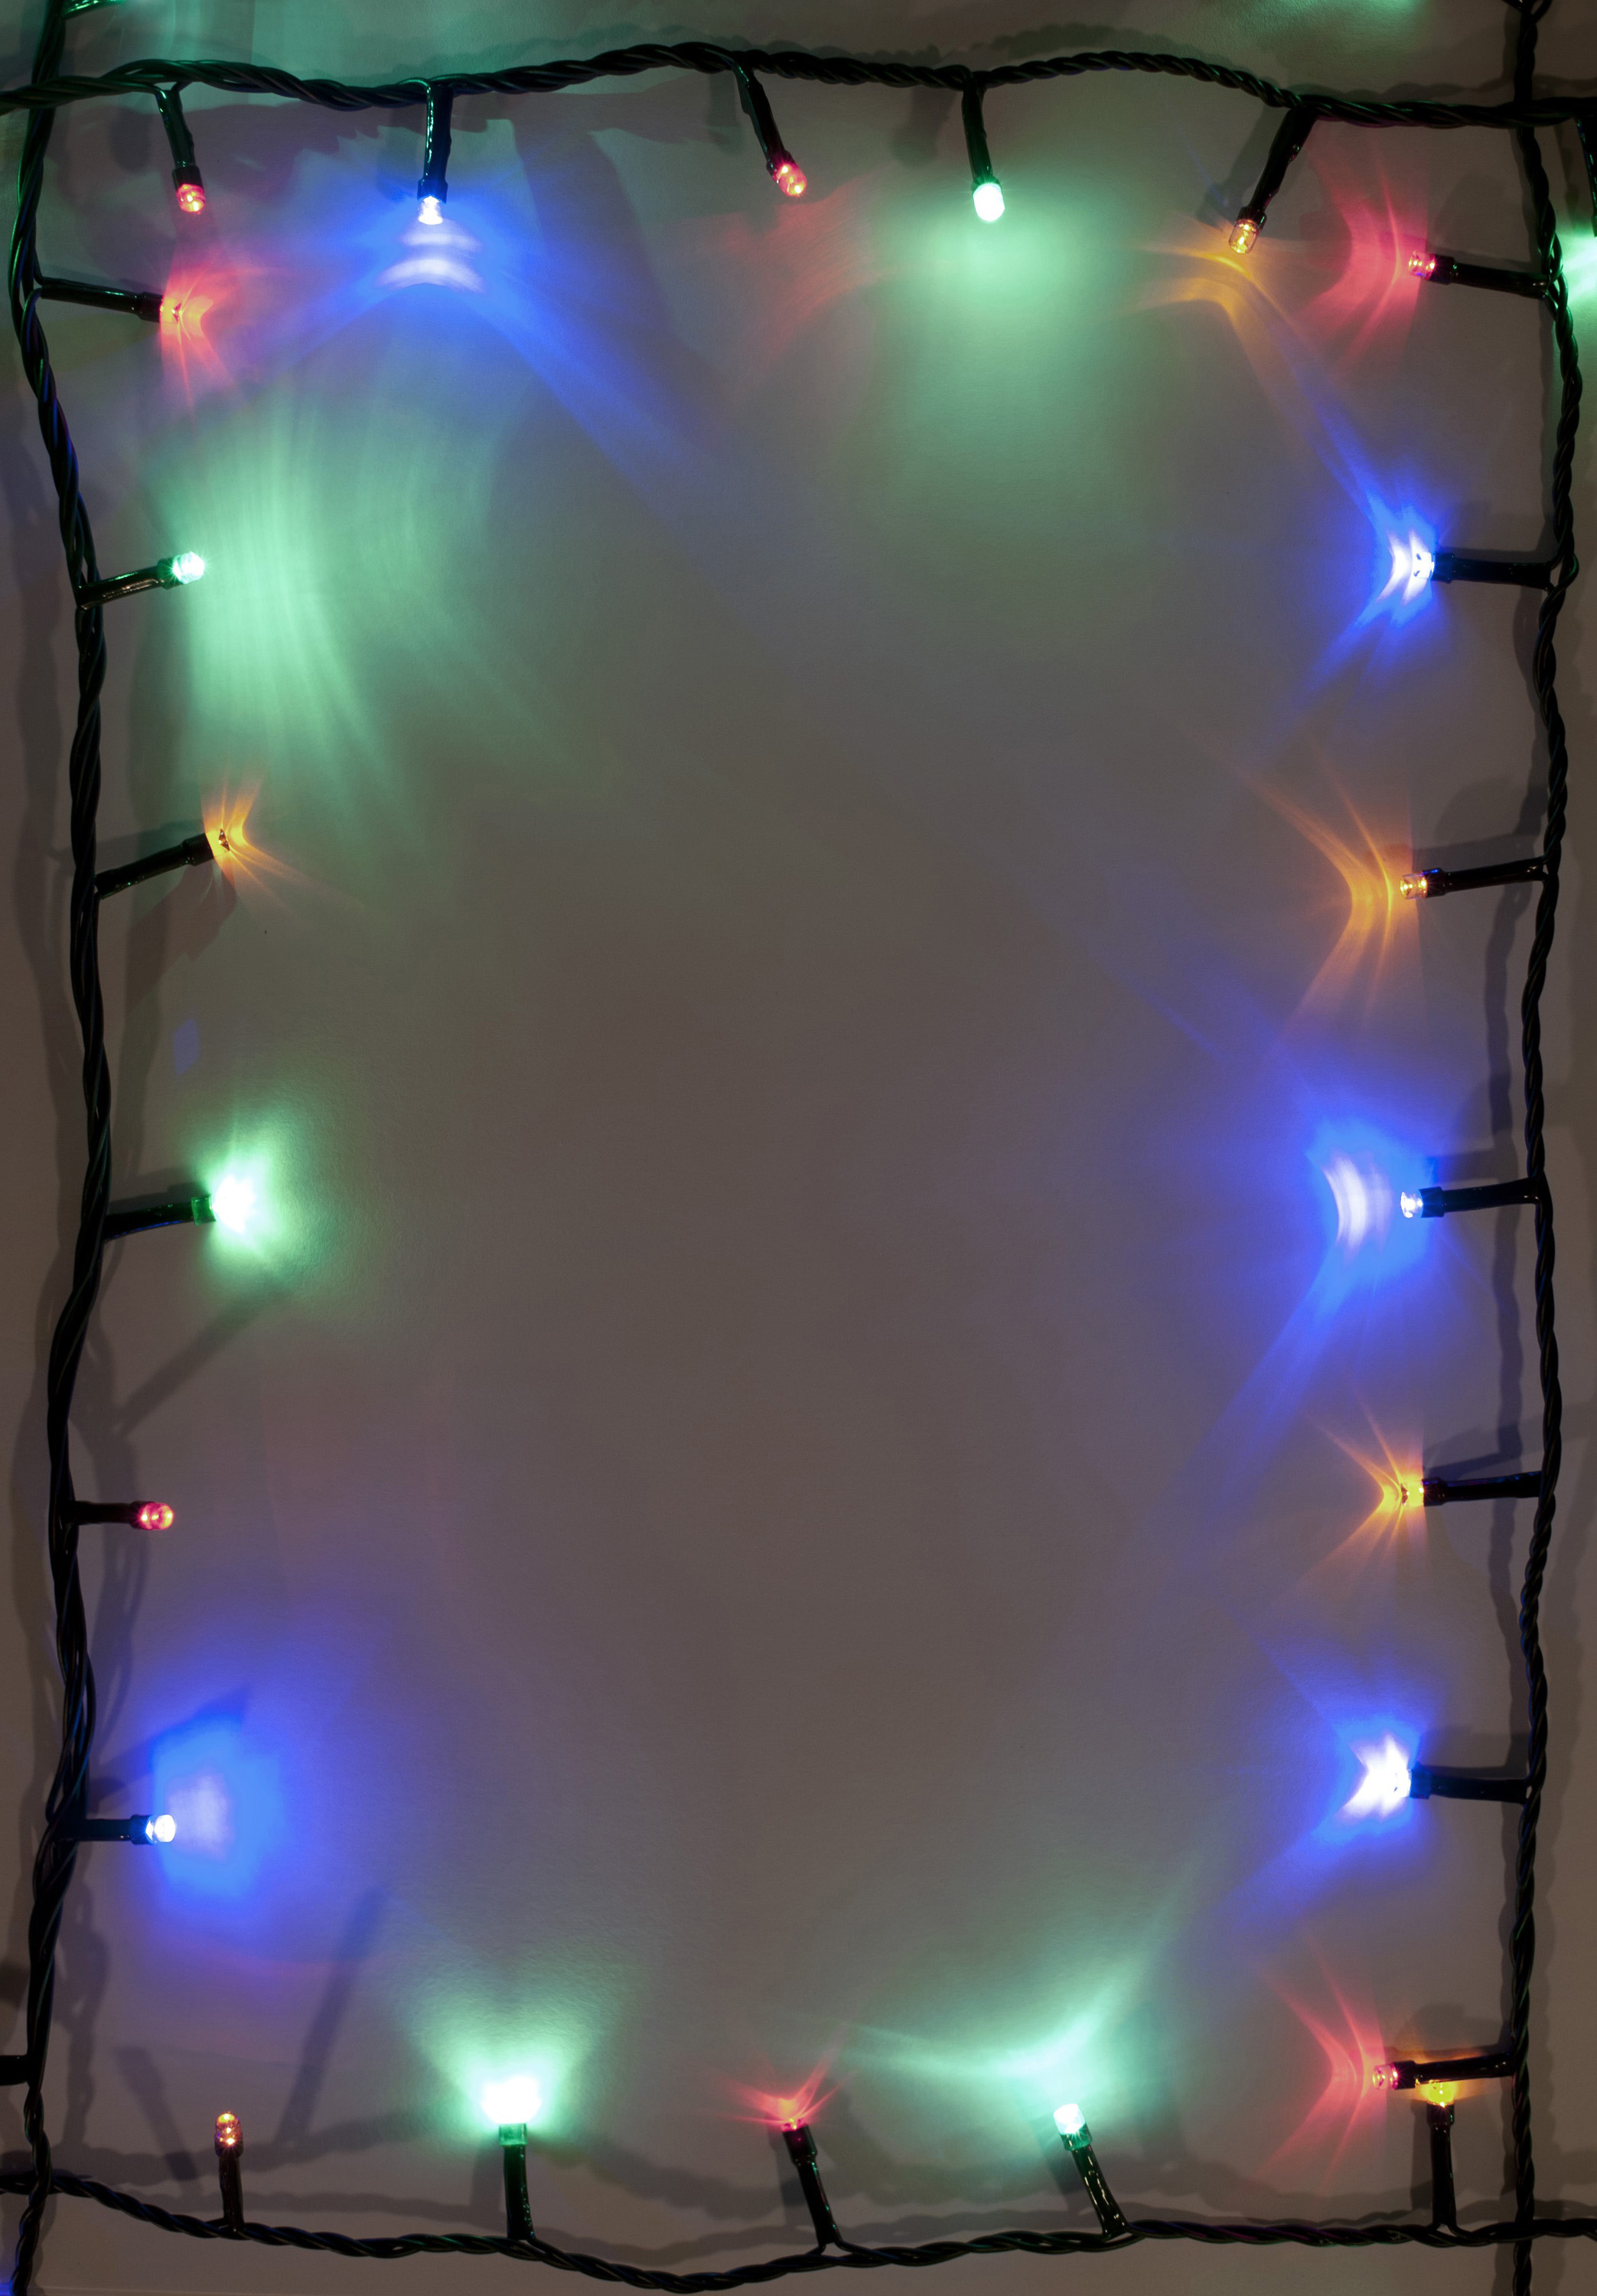 Lighted brigtful garland around the edges. Copy space